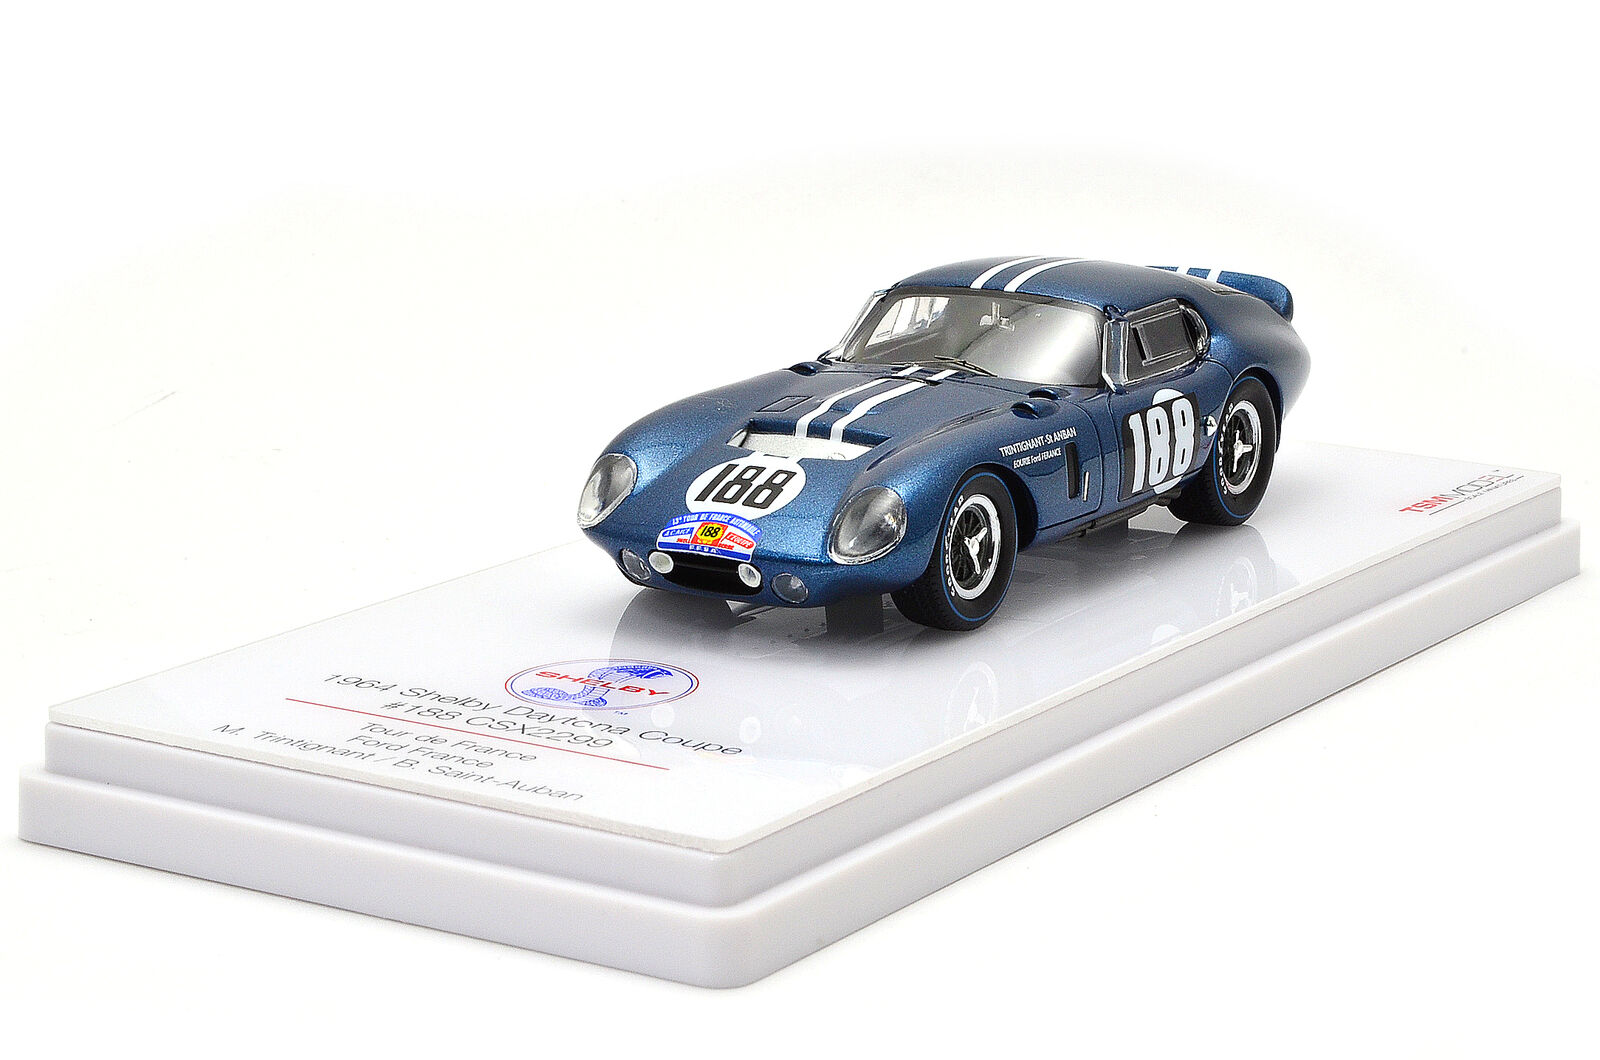 Shelby Daytona Coupe' Csx2299 #188 Tour De France 1964 True Scale 1:43 TSM154353 | France